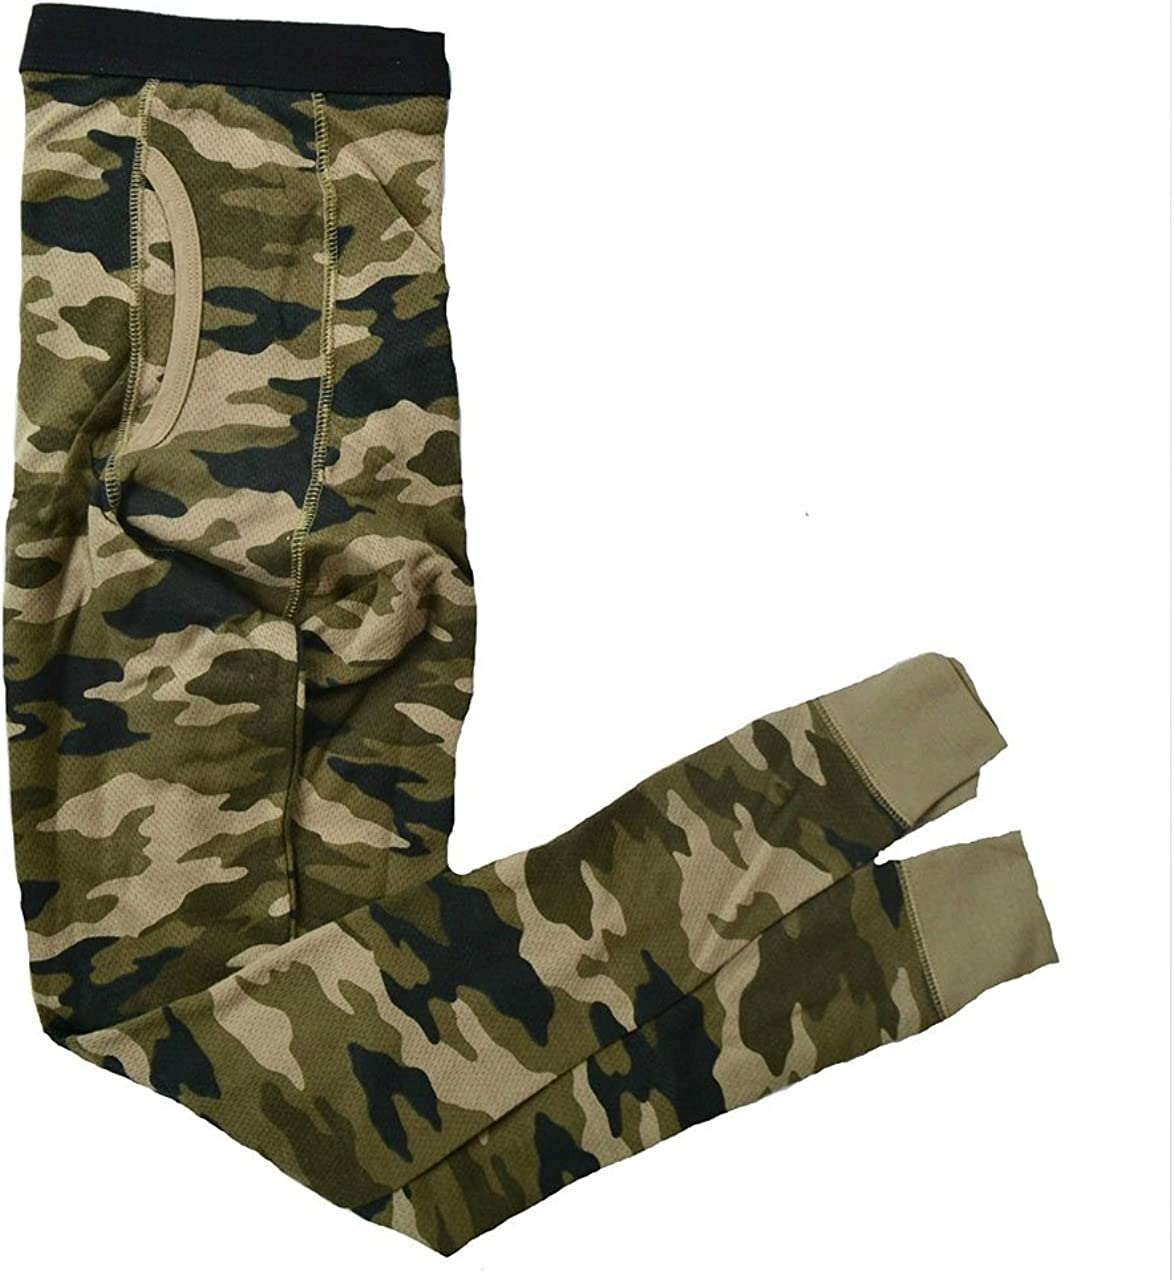 Croft & Barrow Mens Camouflage Thermal Pants - Size